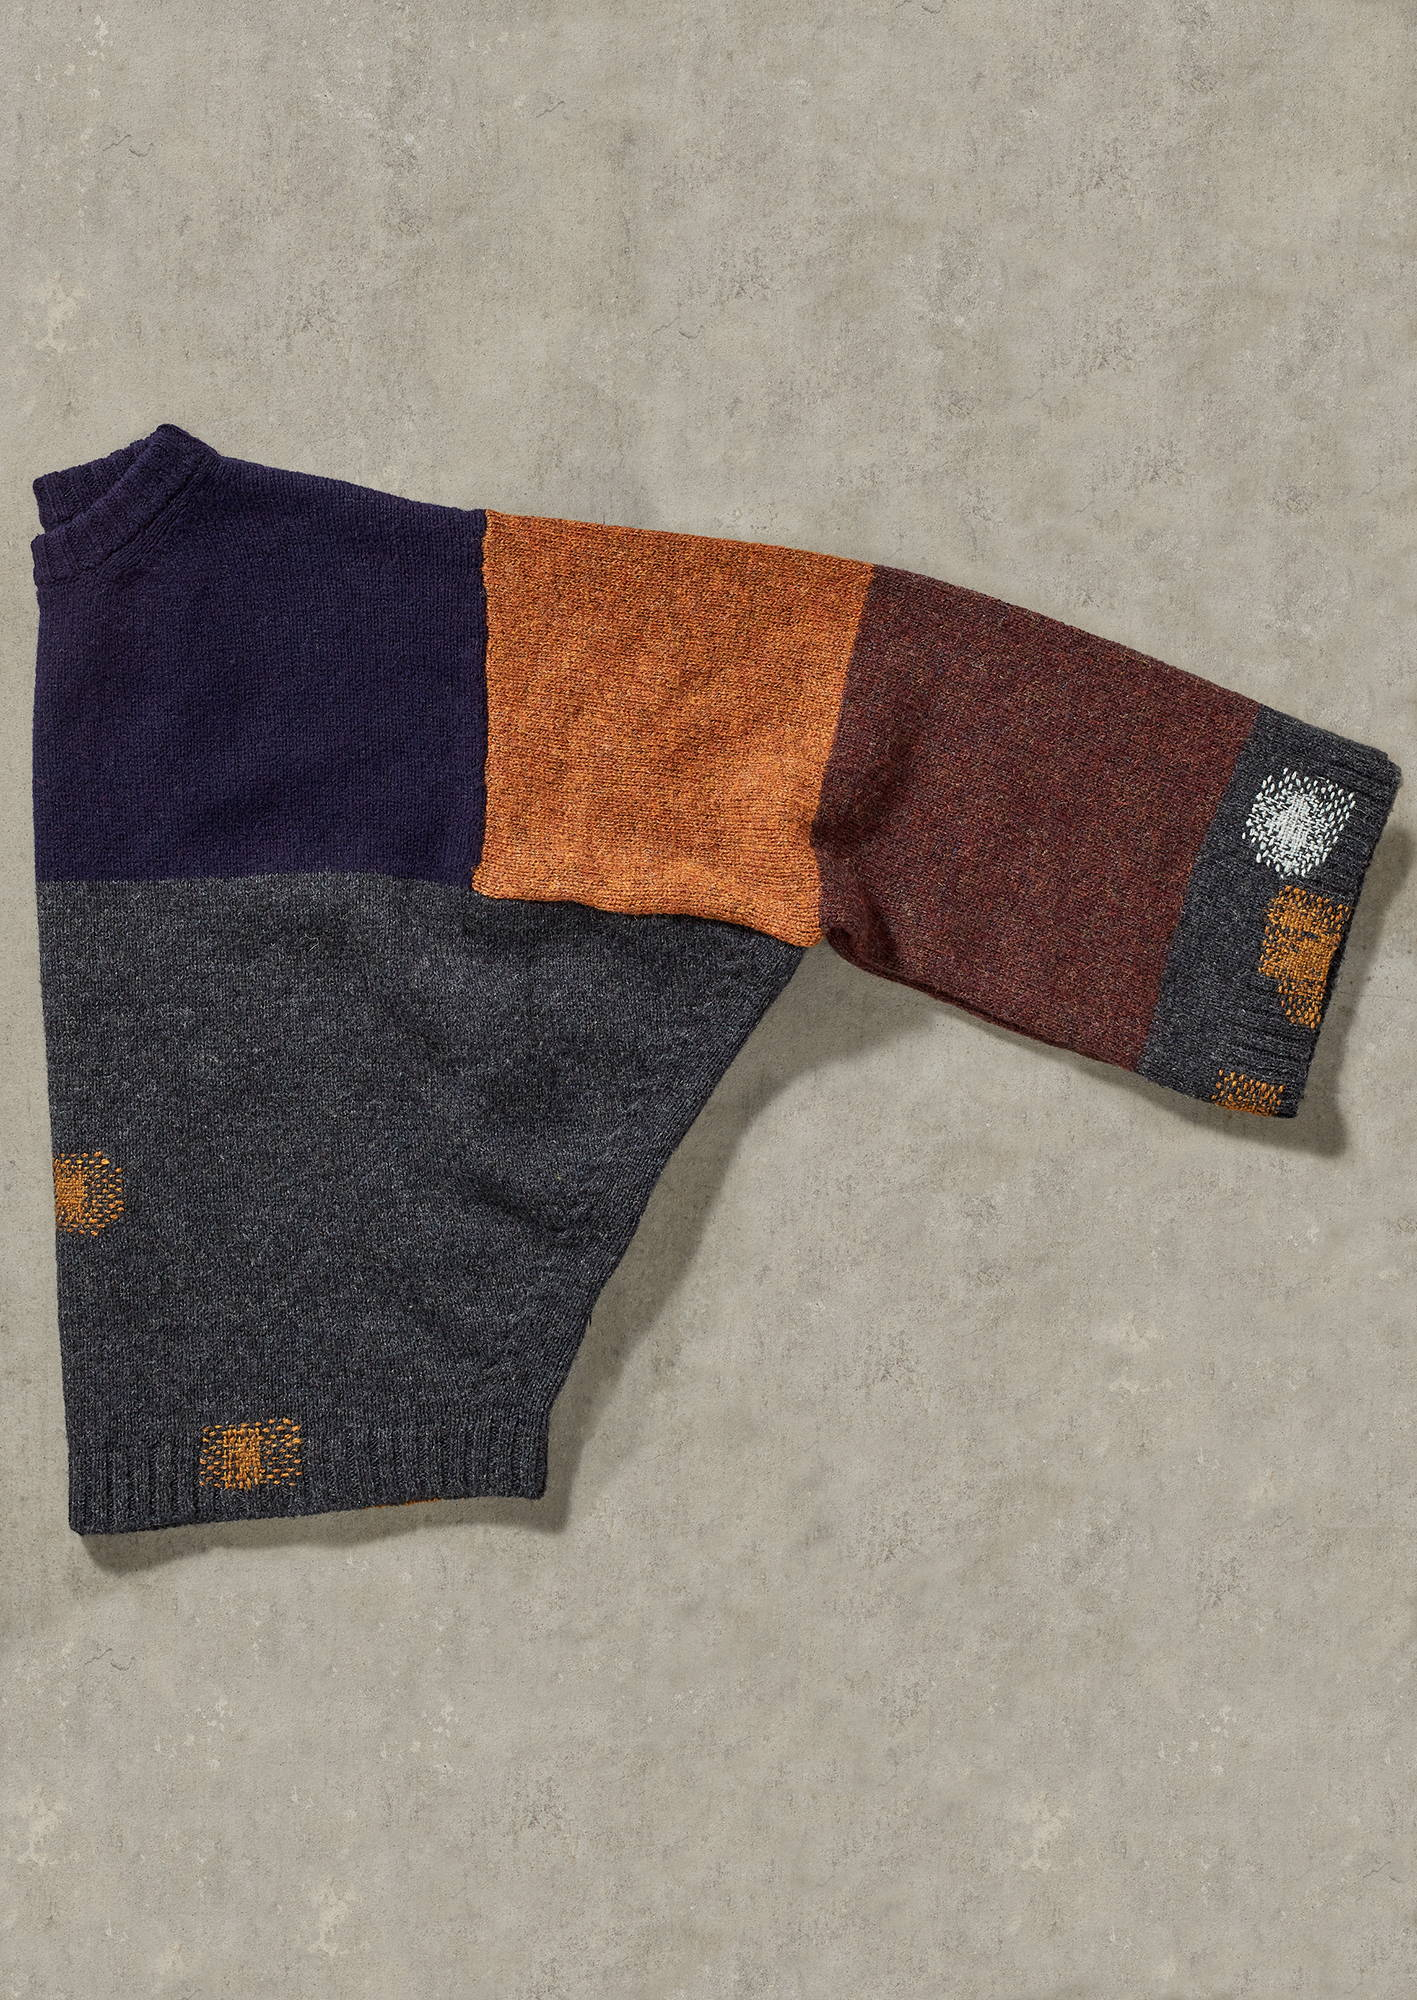 Multicolor sweater from TOAST with mended parts.